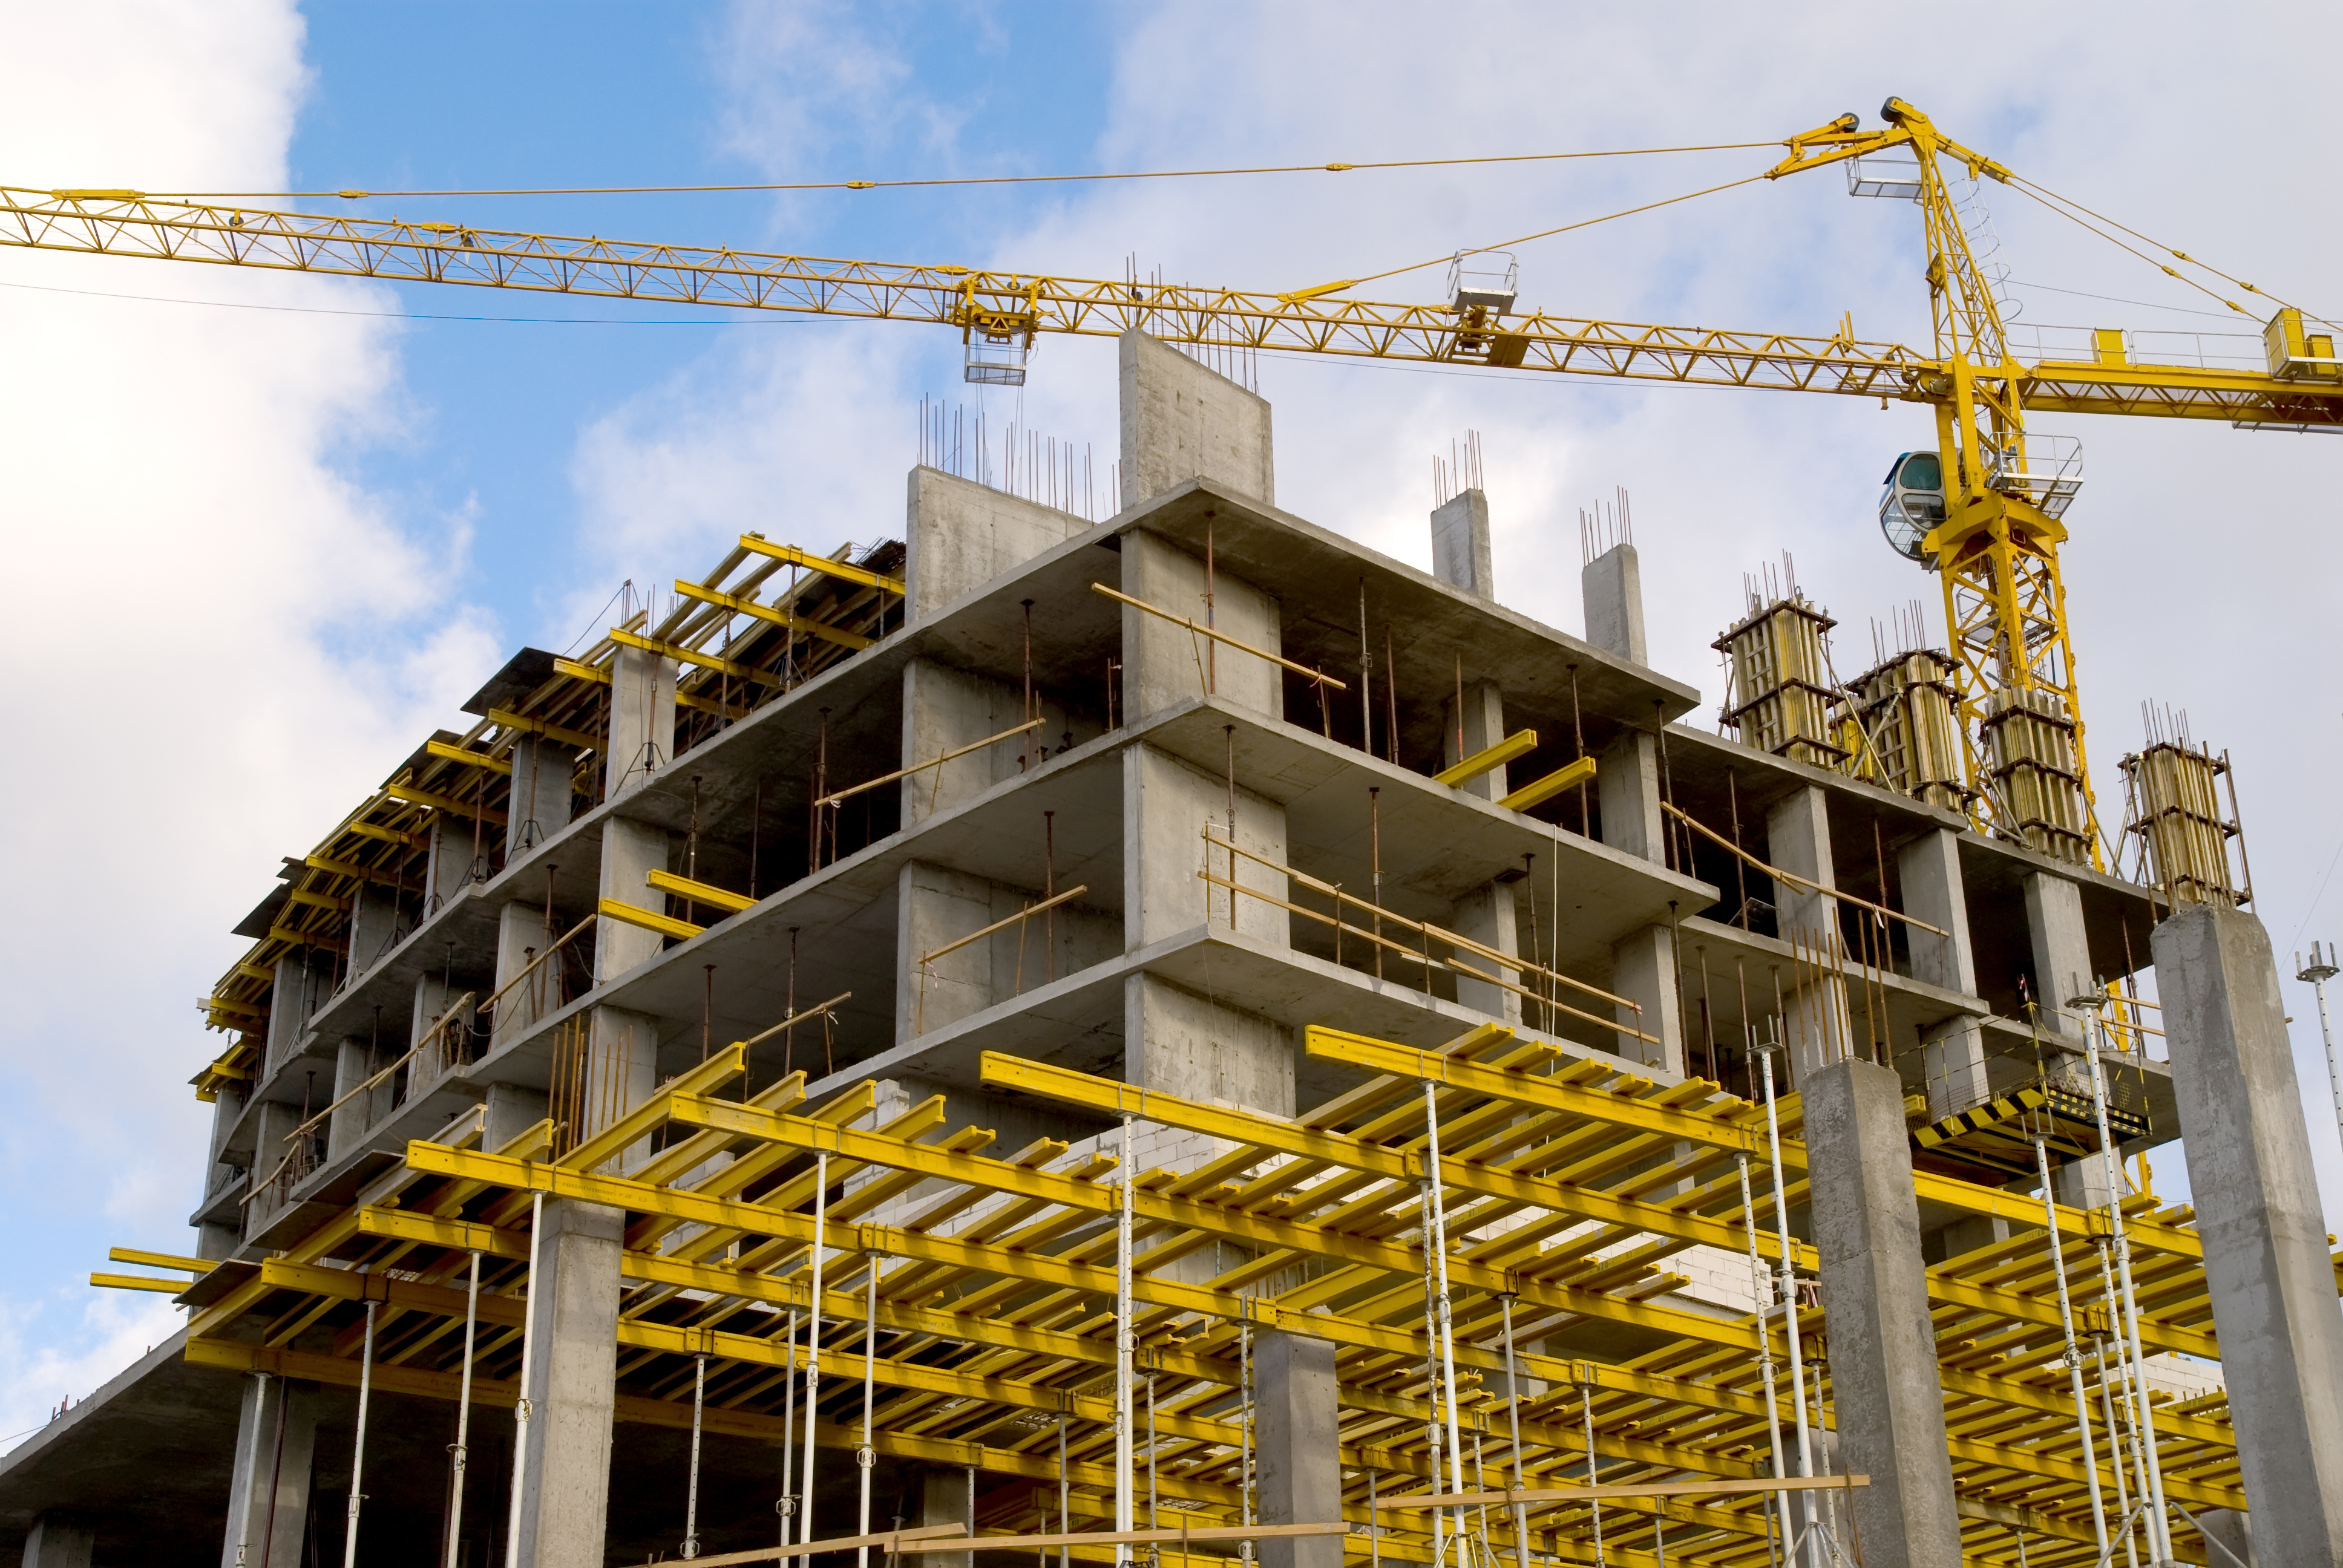 NSW reforms to fix building defects – potential for indeterminate liability?